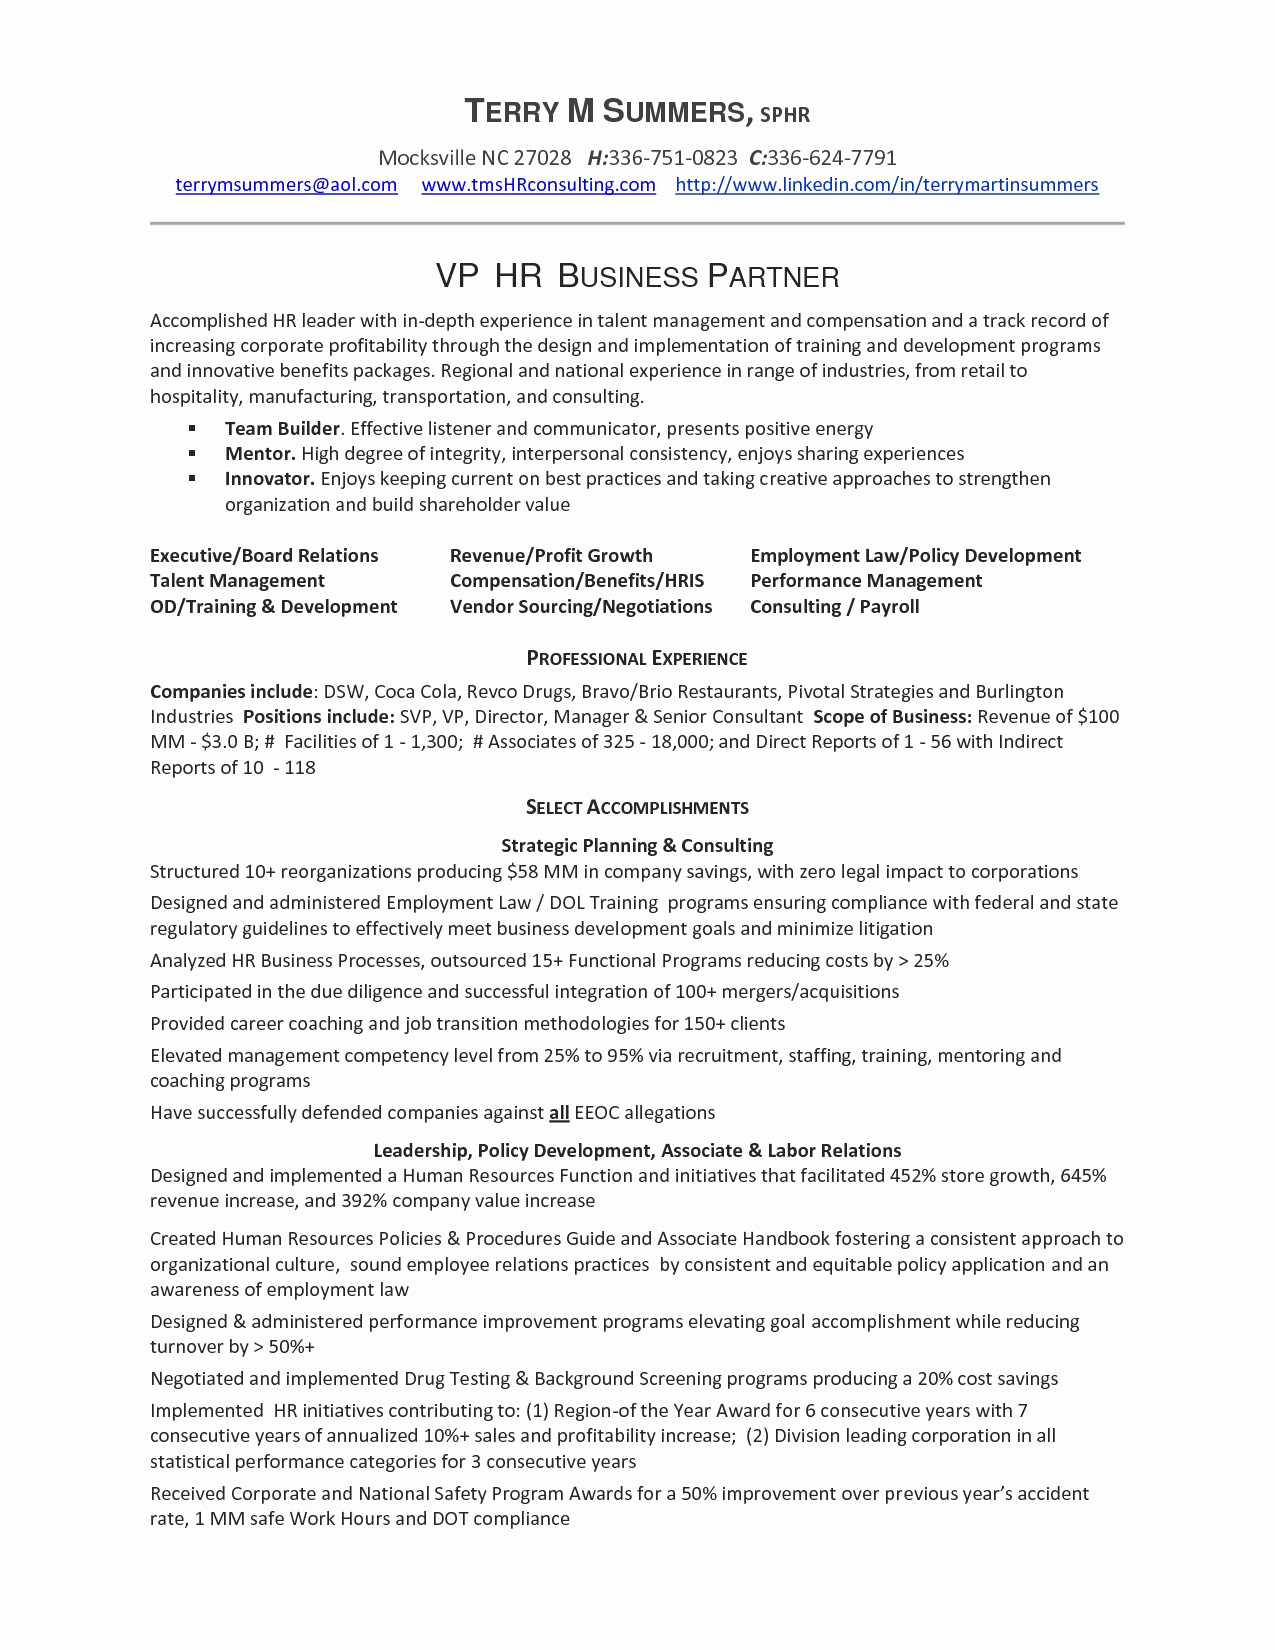 Writing A formal Letter Template - Resume Templates Doc Fresh Business Analyst Resume Sample Doc